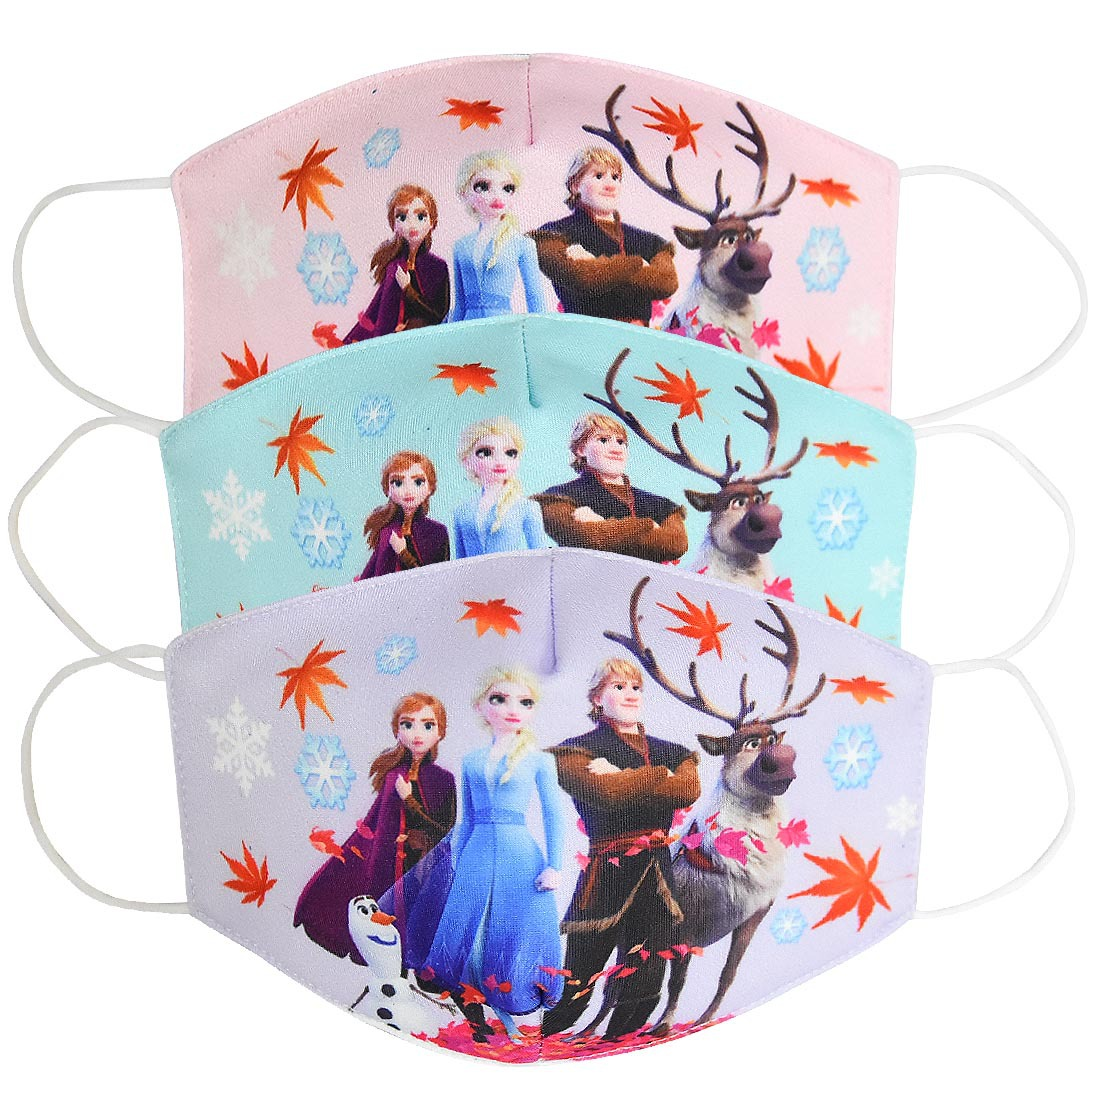 Adult Children Masks Dust-proof Breathable Anti-fog And Haze Mask Frozen Children's Sunscreen Elsa Anna Cartoon Printed Masks